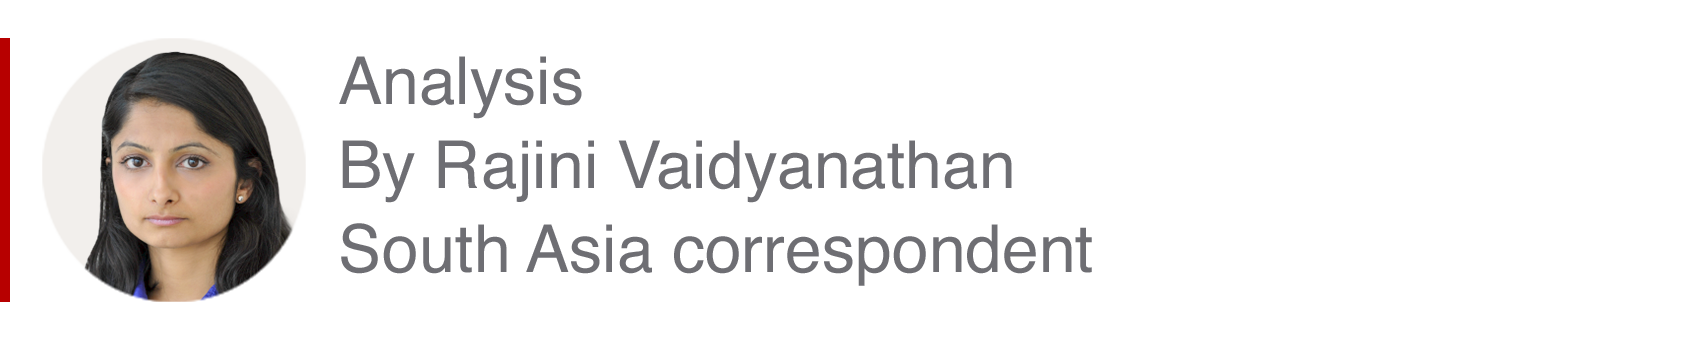 Analysis box by Rajini Vaidyanathan, South Asia correspondent